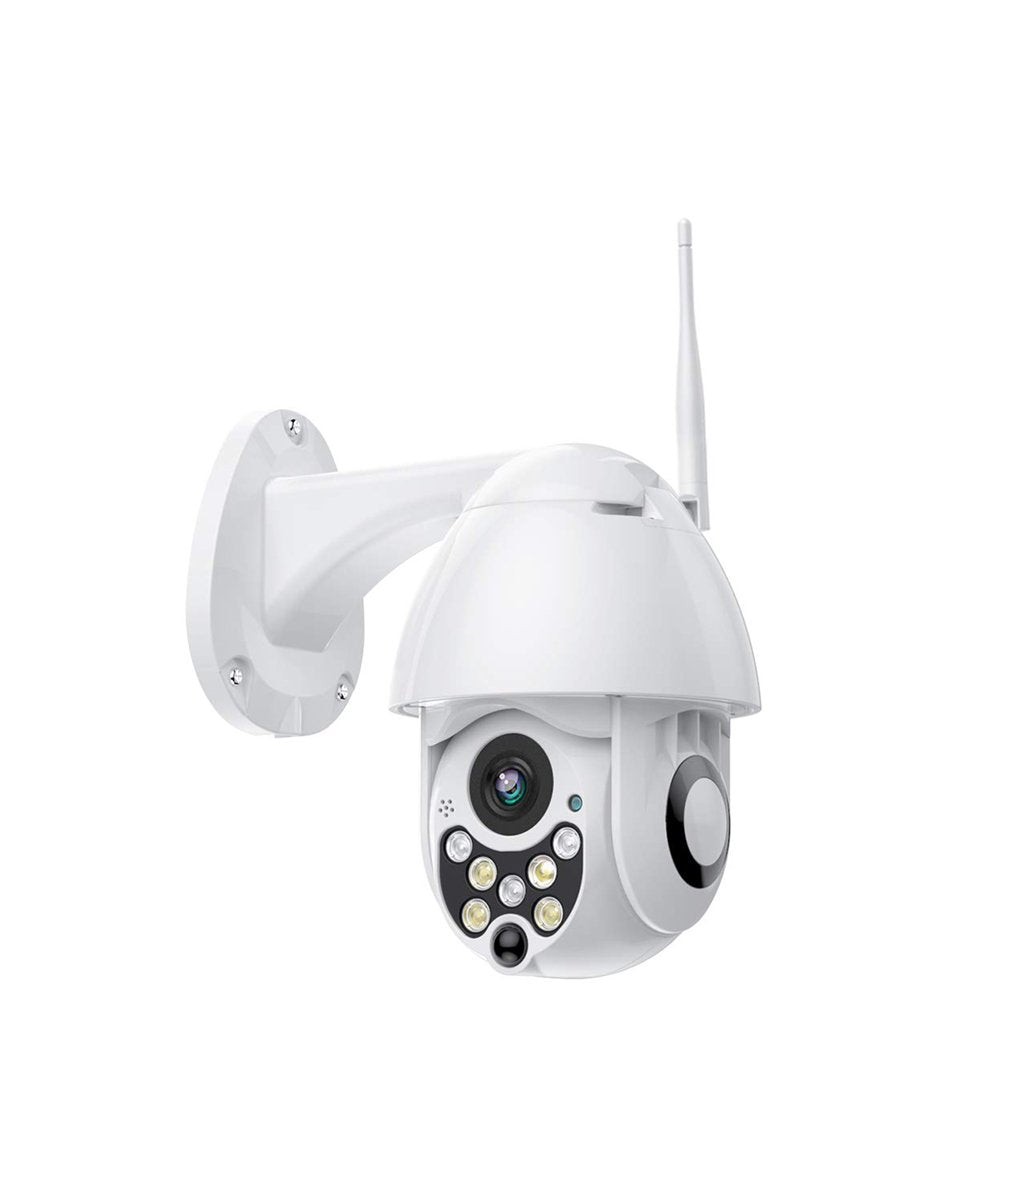 DigiEye Outdoor WiFi Camera - cabindusk